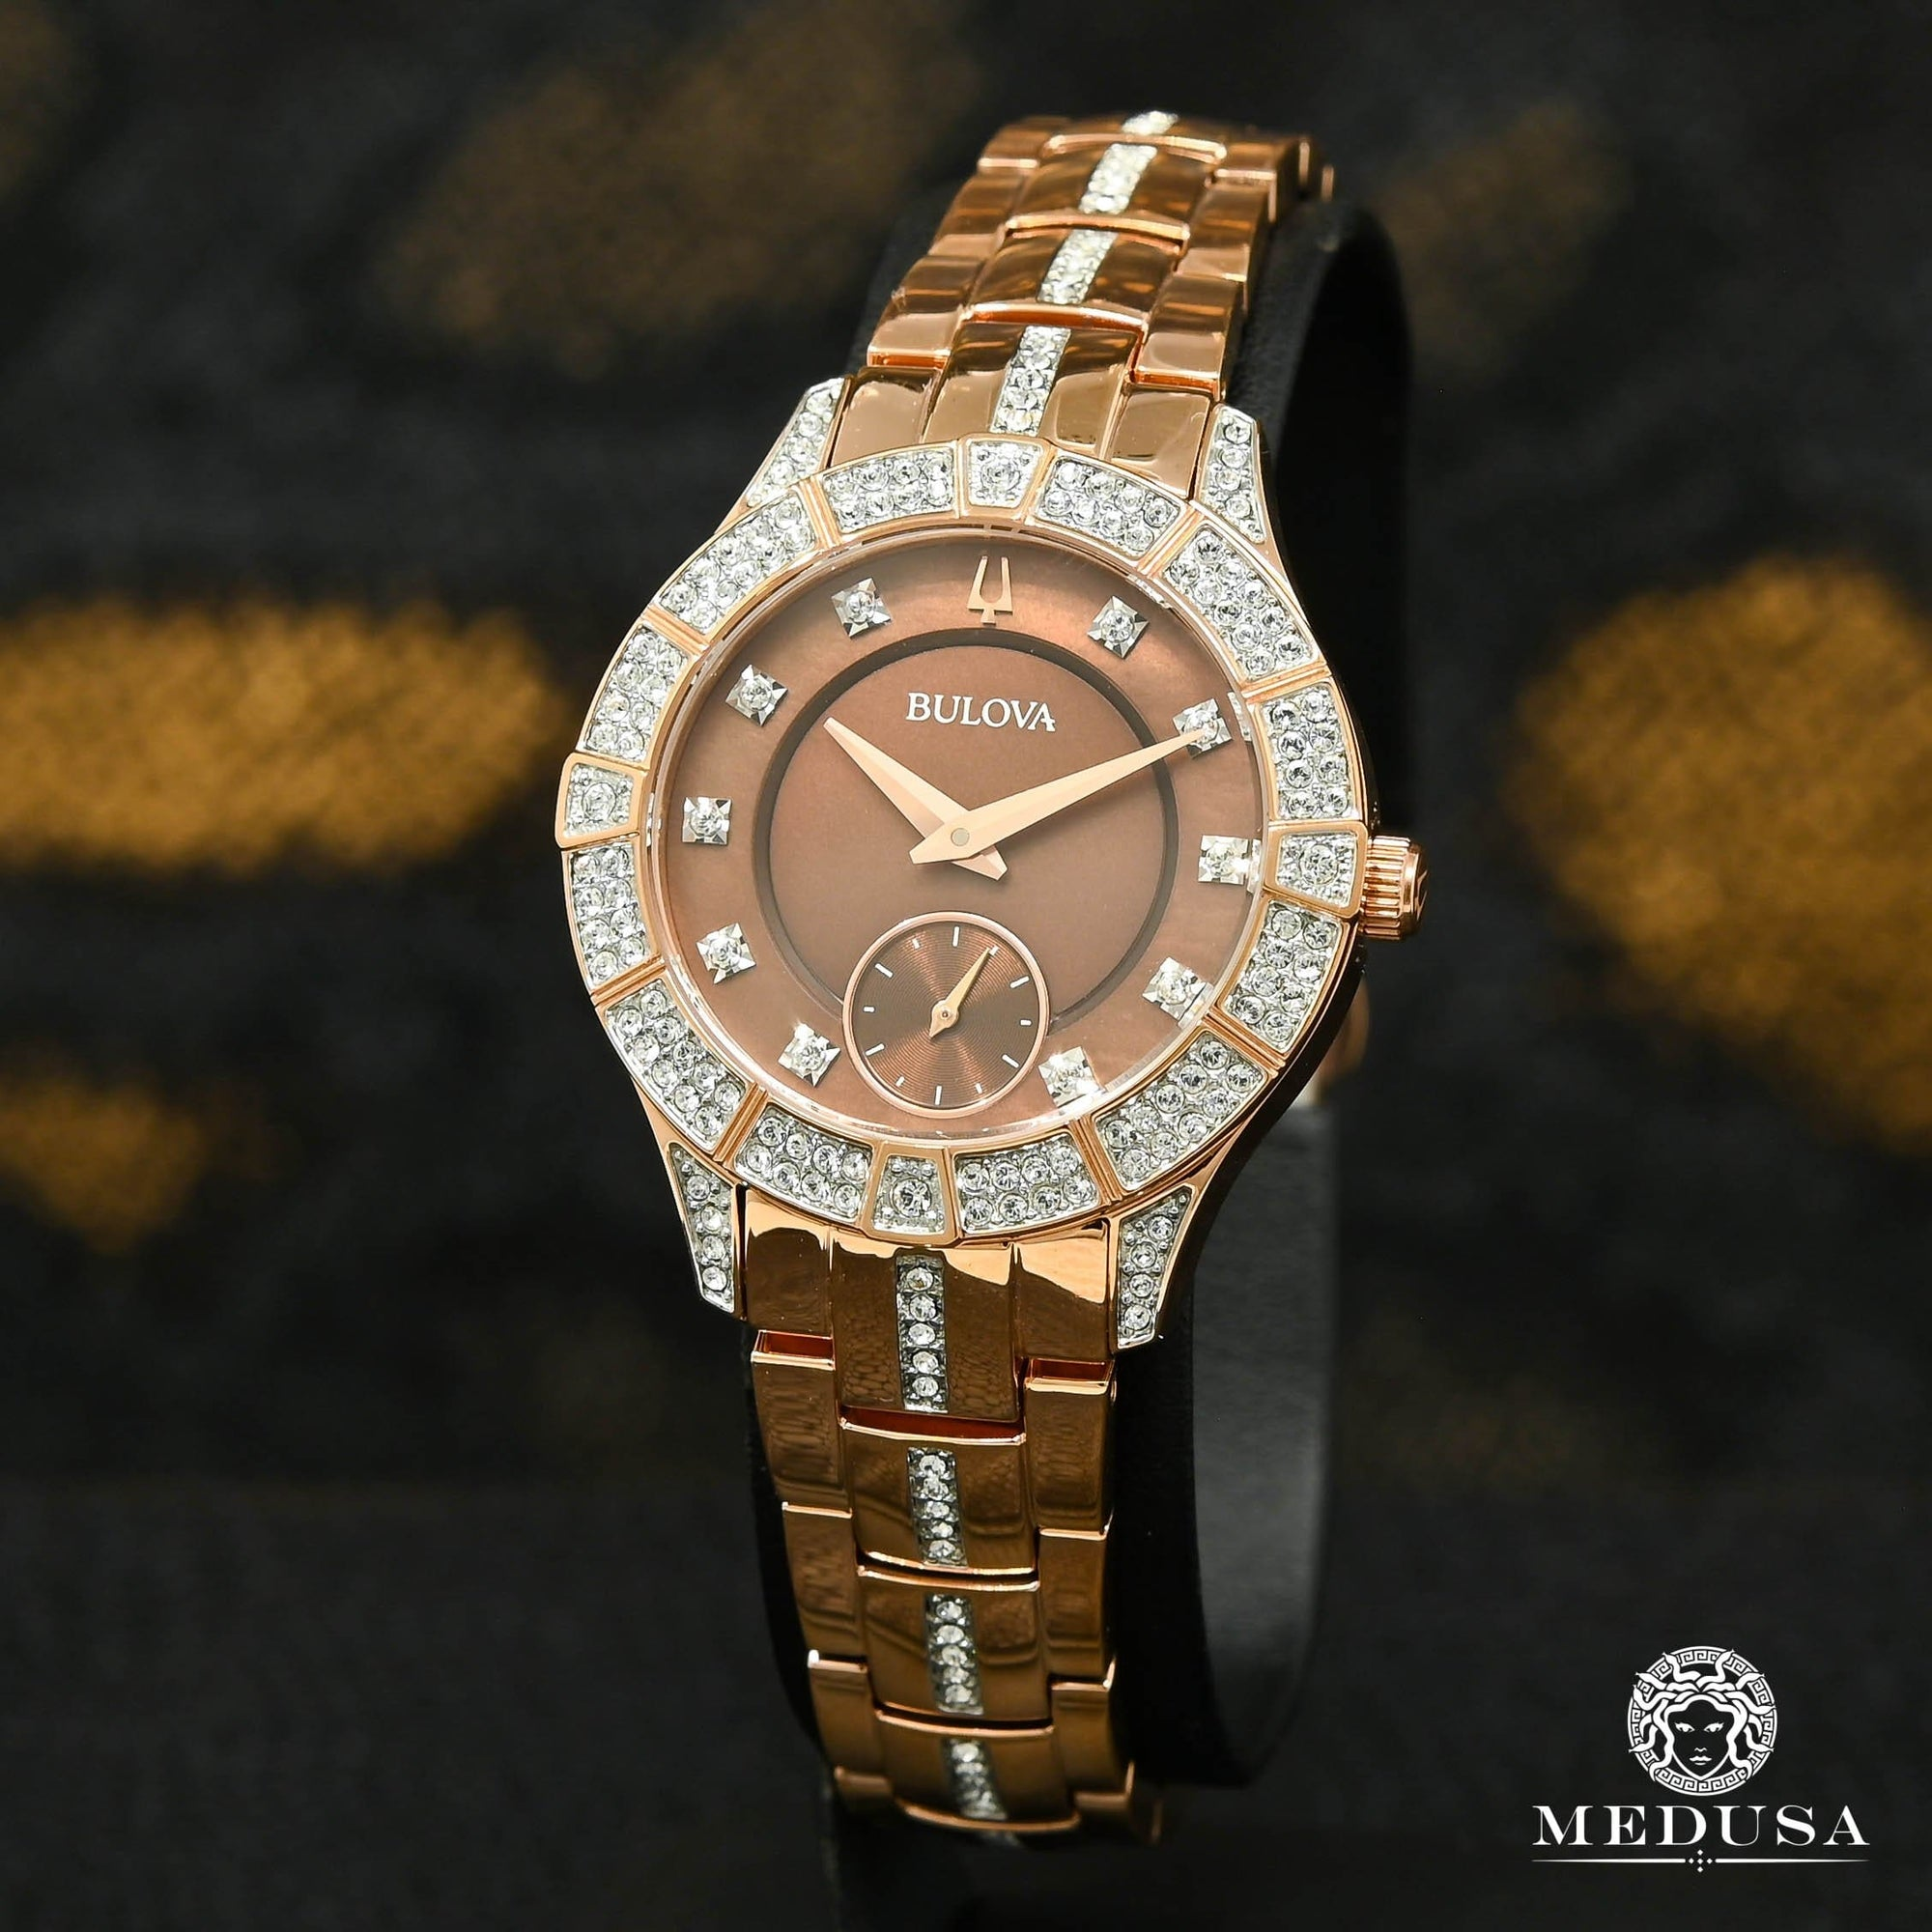 Bulova Watch | Bulova Phantom Ladies Watch - 98L284 Rose Gold